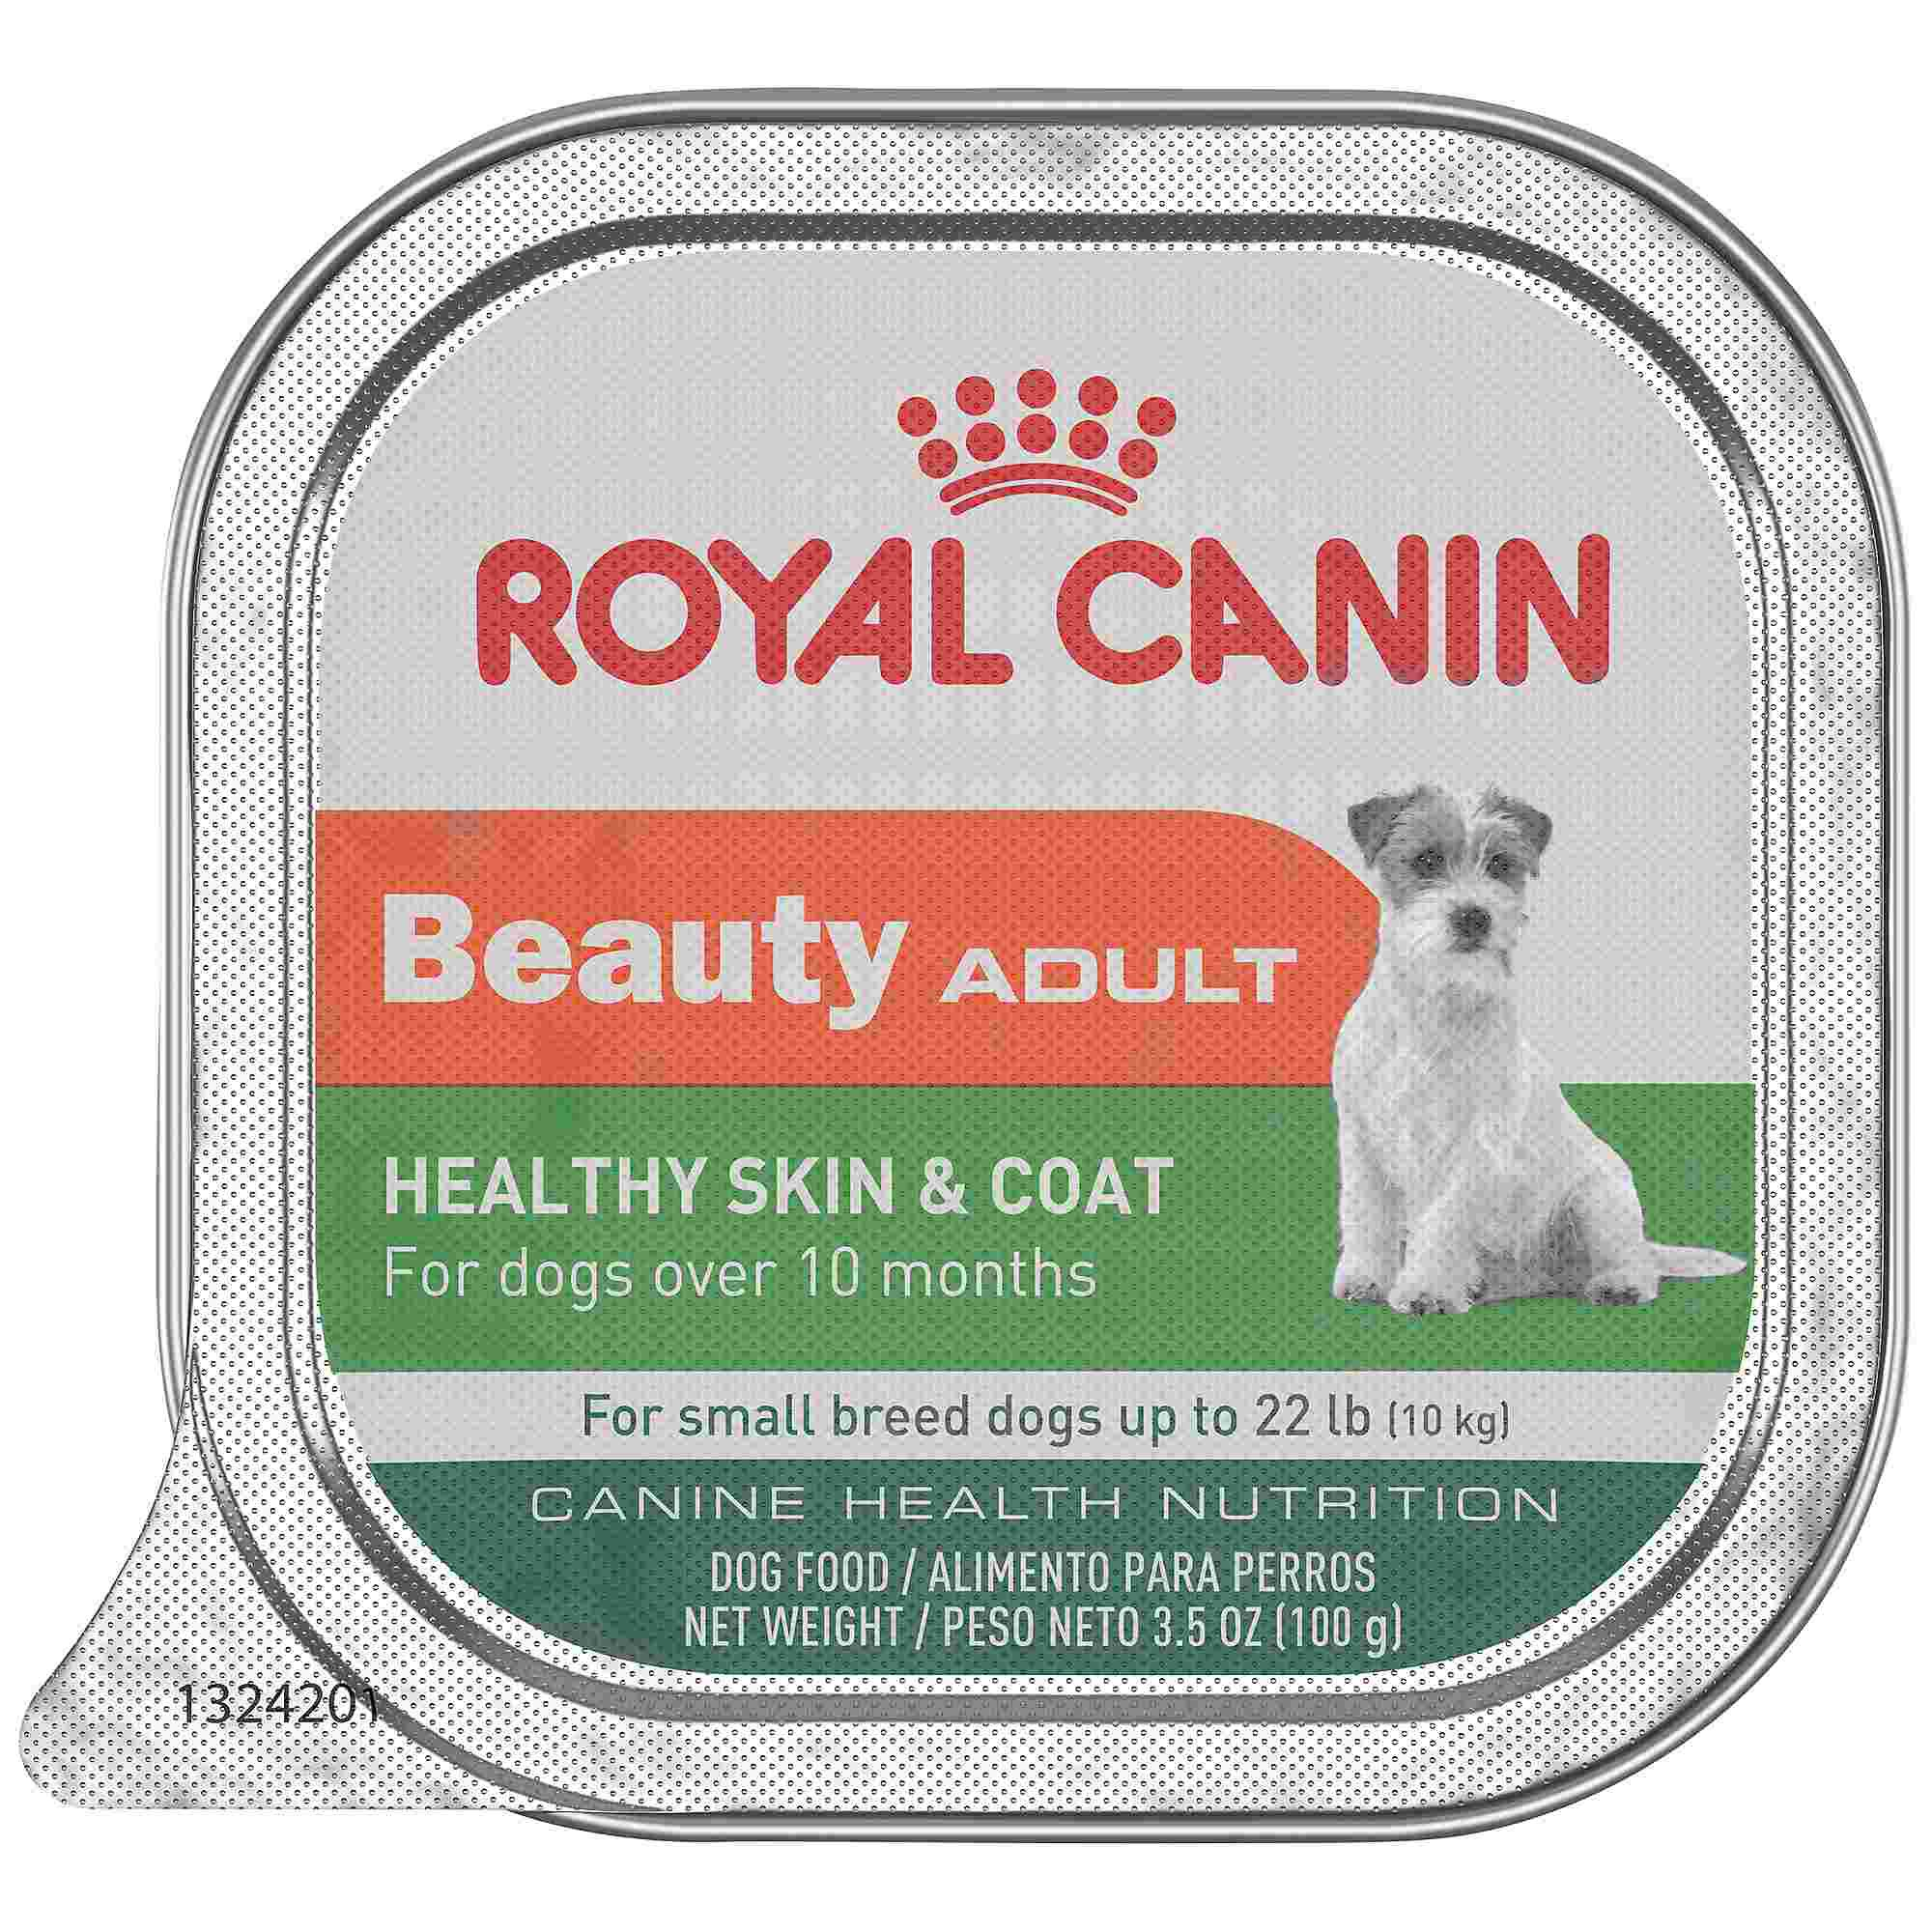 Royal Canin Beauty Canine Health Nutrition Small Breed Adult Dog Food Trays